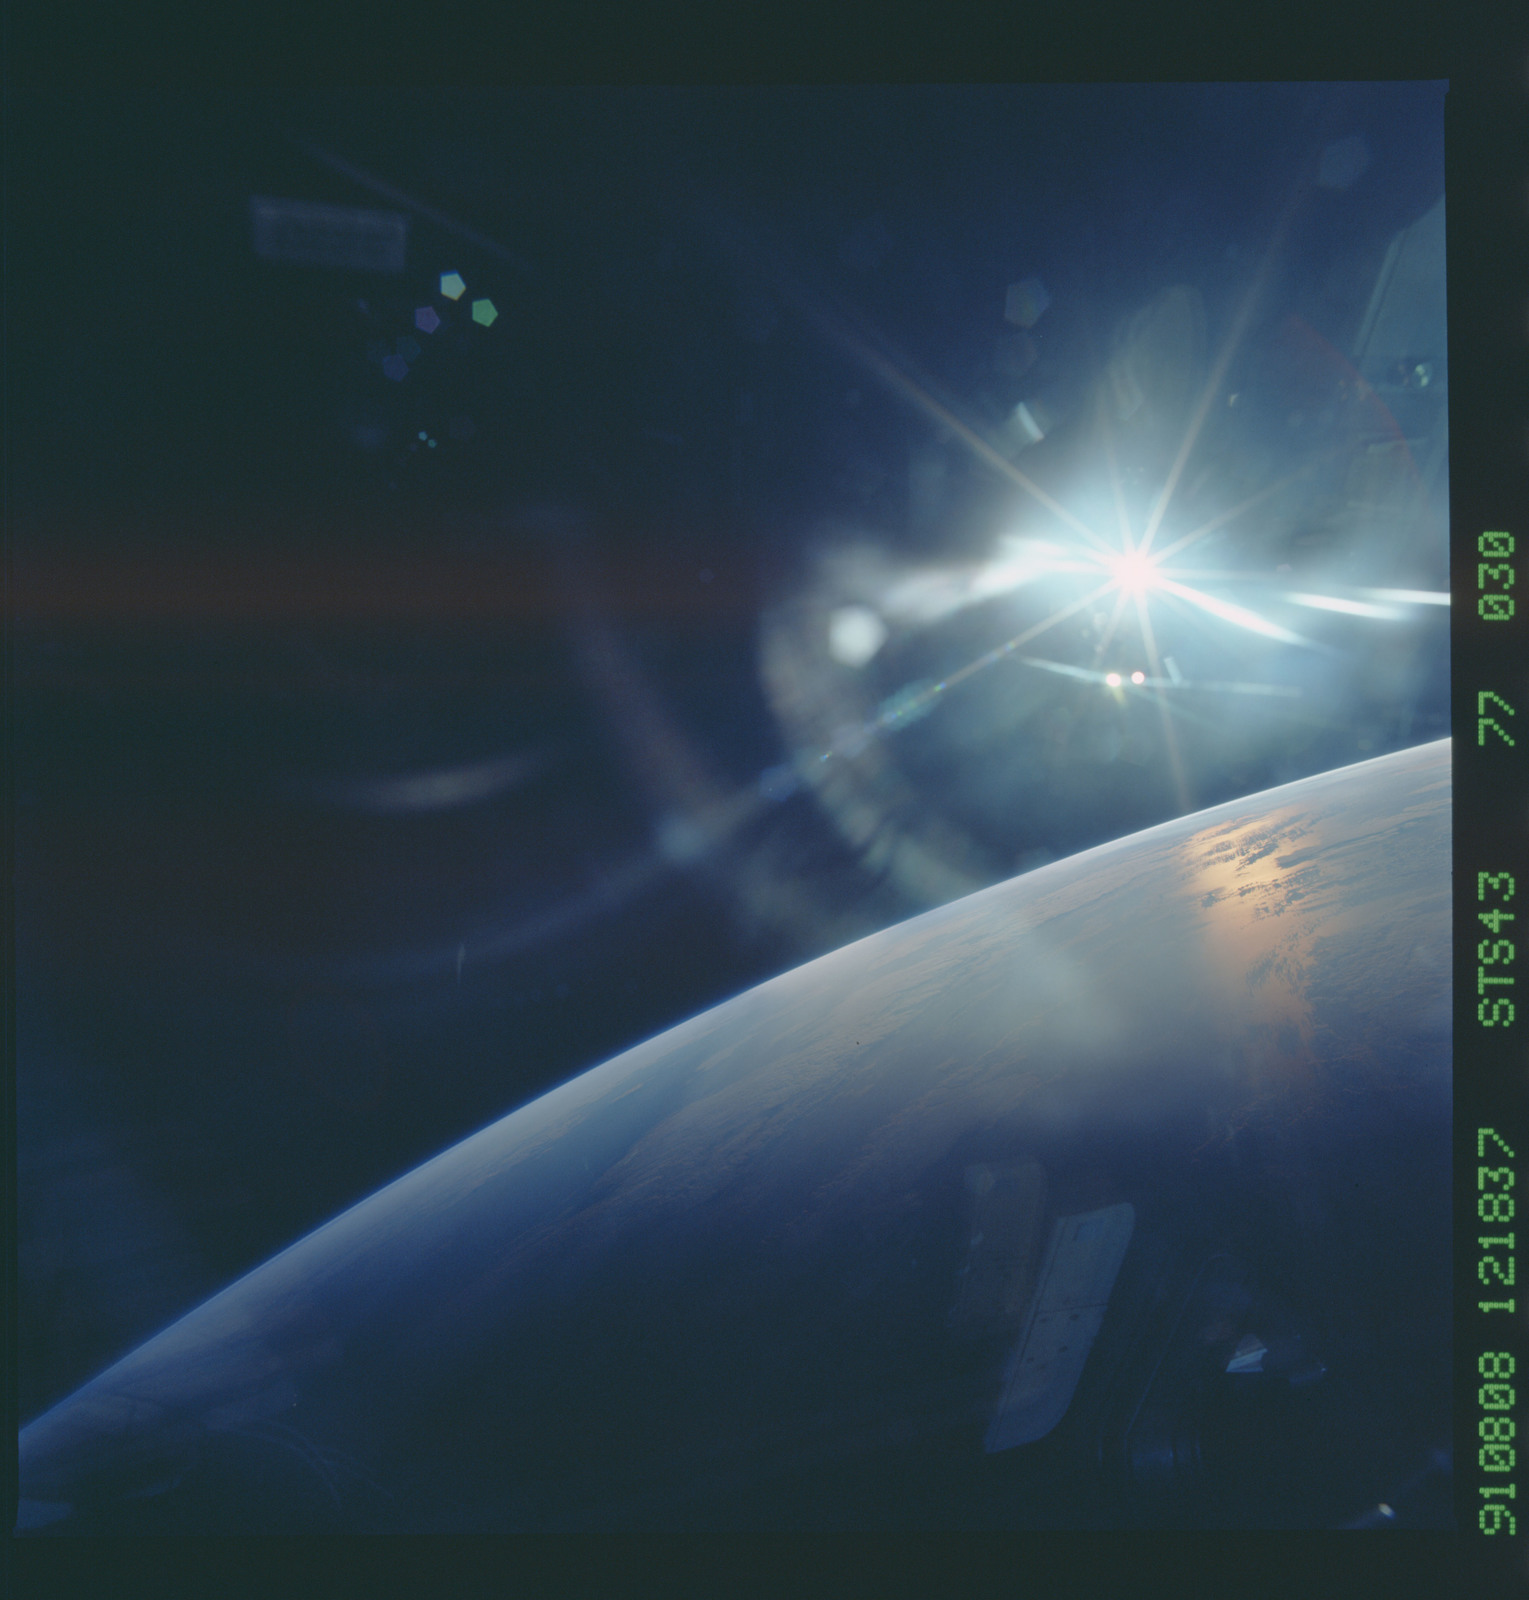 S43-77-030 - STS-043 - STS-43 earth observations